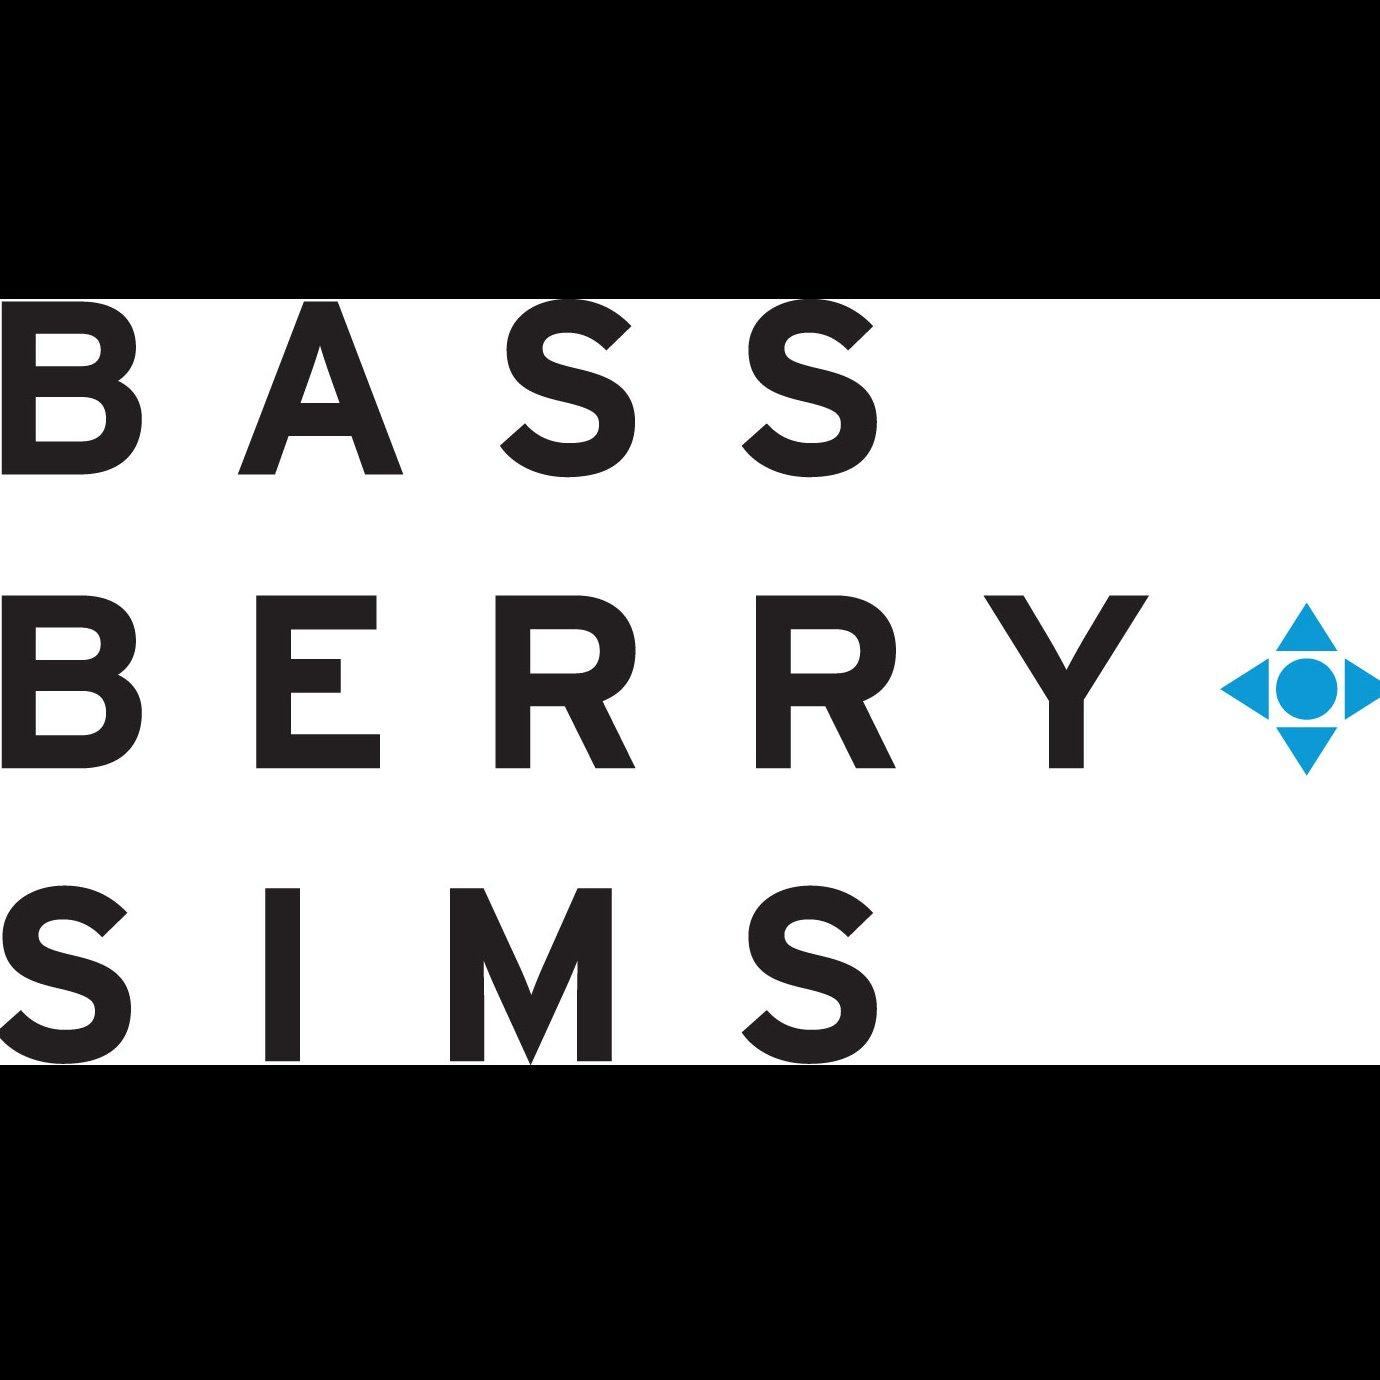 Bass, Berry & Sims PLC